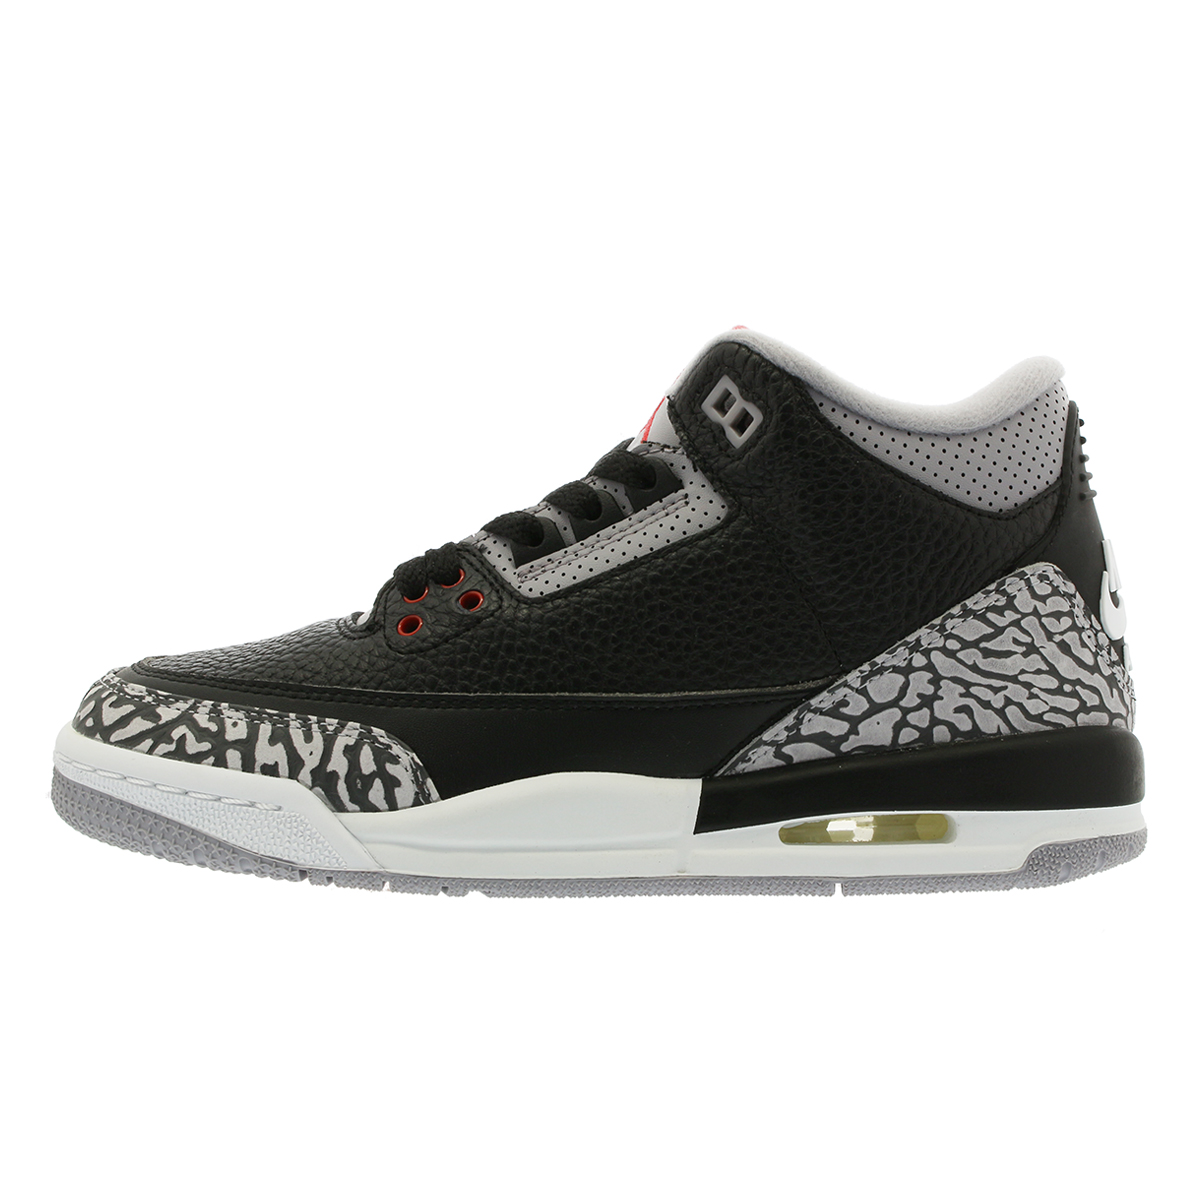 71d81e41c925e1 NIKE AIR JORDAN 3 RETRO OG BG Nike air Jordan 3 nostalgic OG BG BLACK FIRE  RED CEMENT GREY WHITE 854